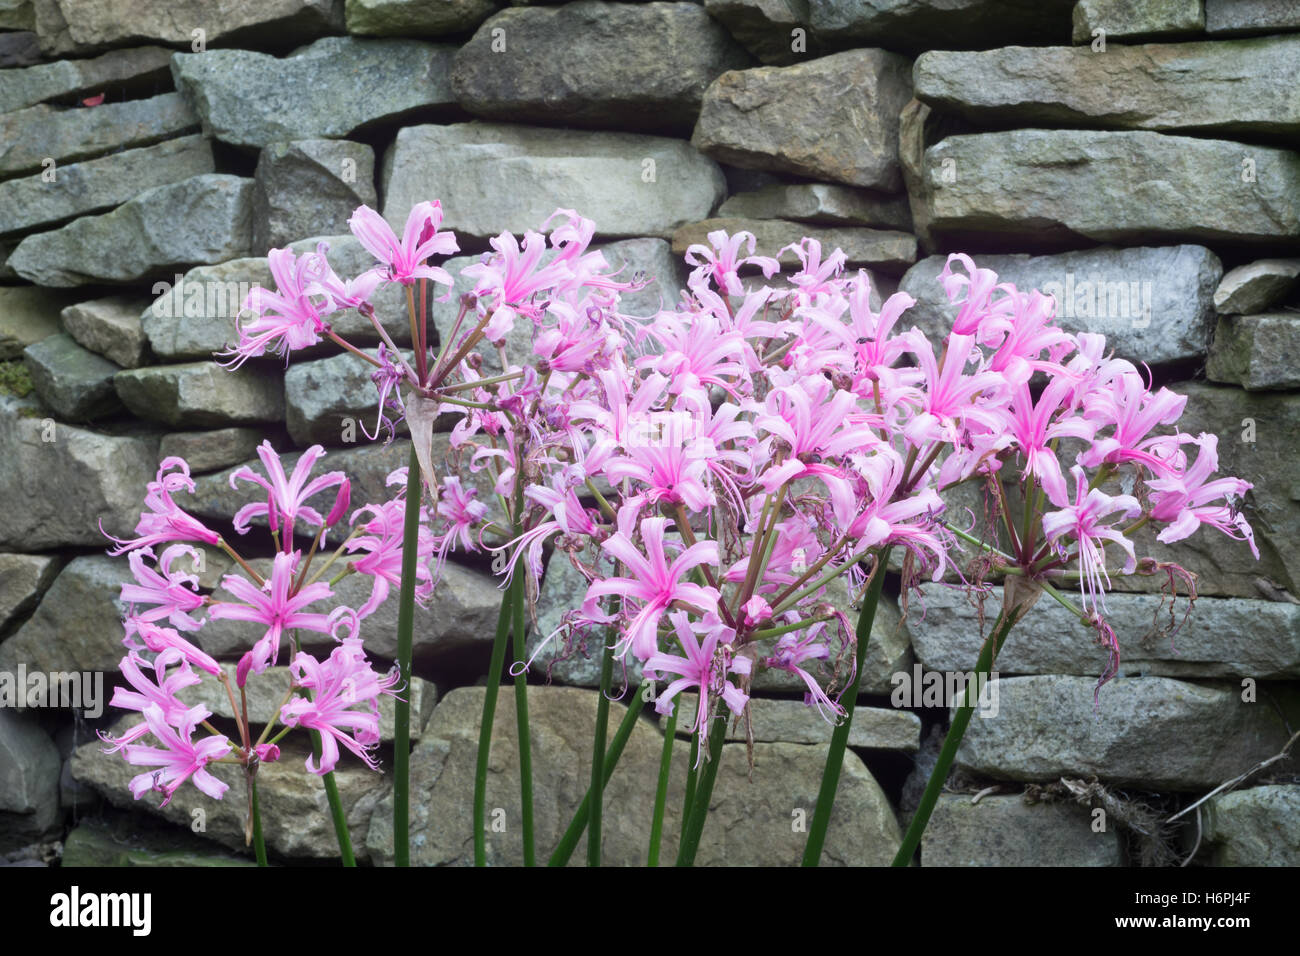 Nerine bowdenii against a drystone wall - Stock Image